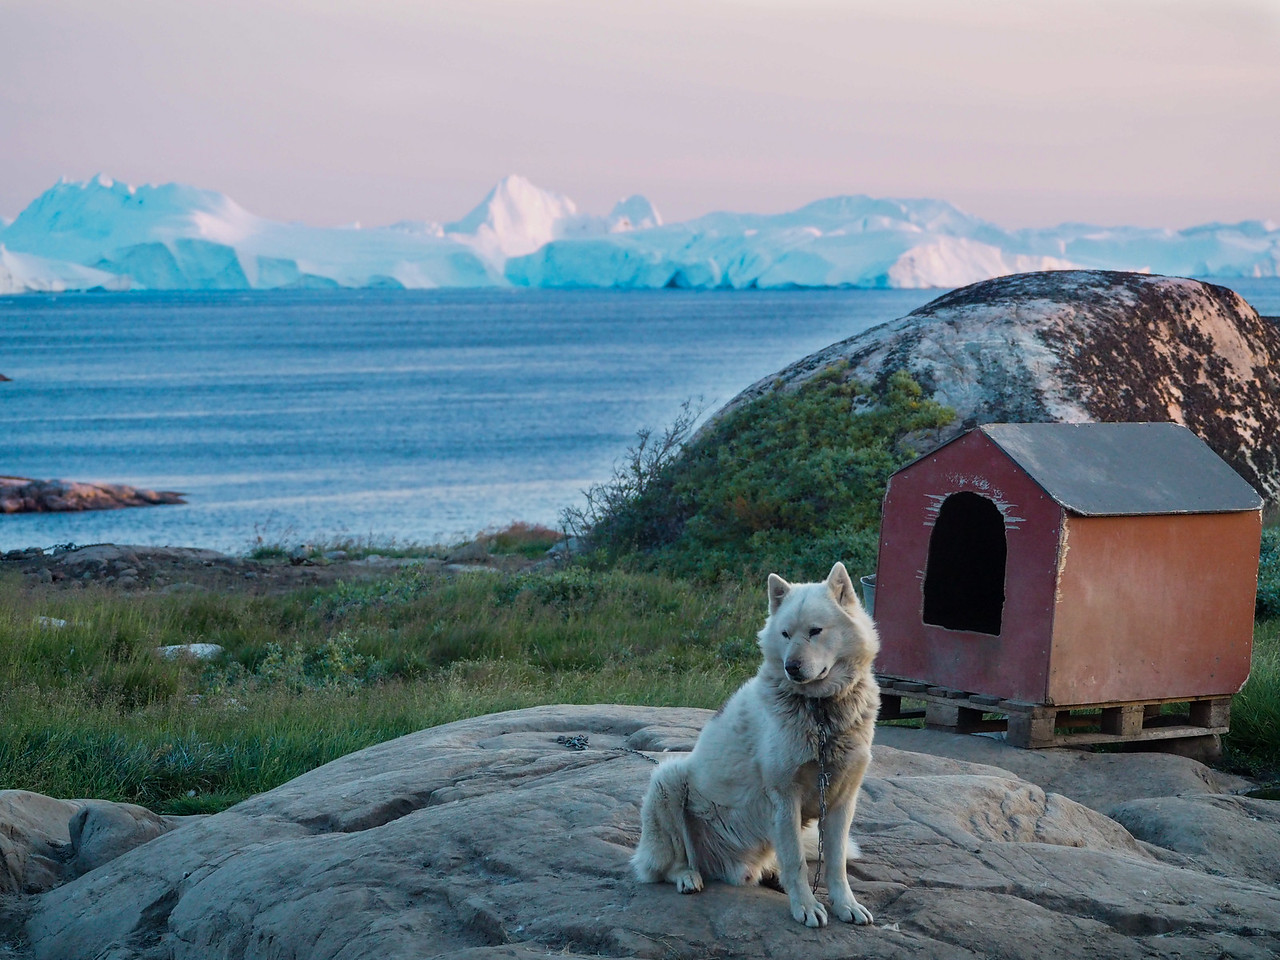 Sled dog at sunset in Ilulissat